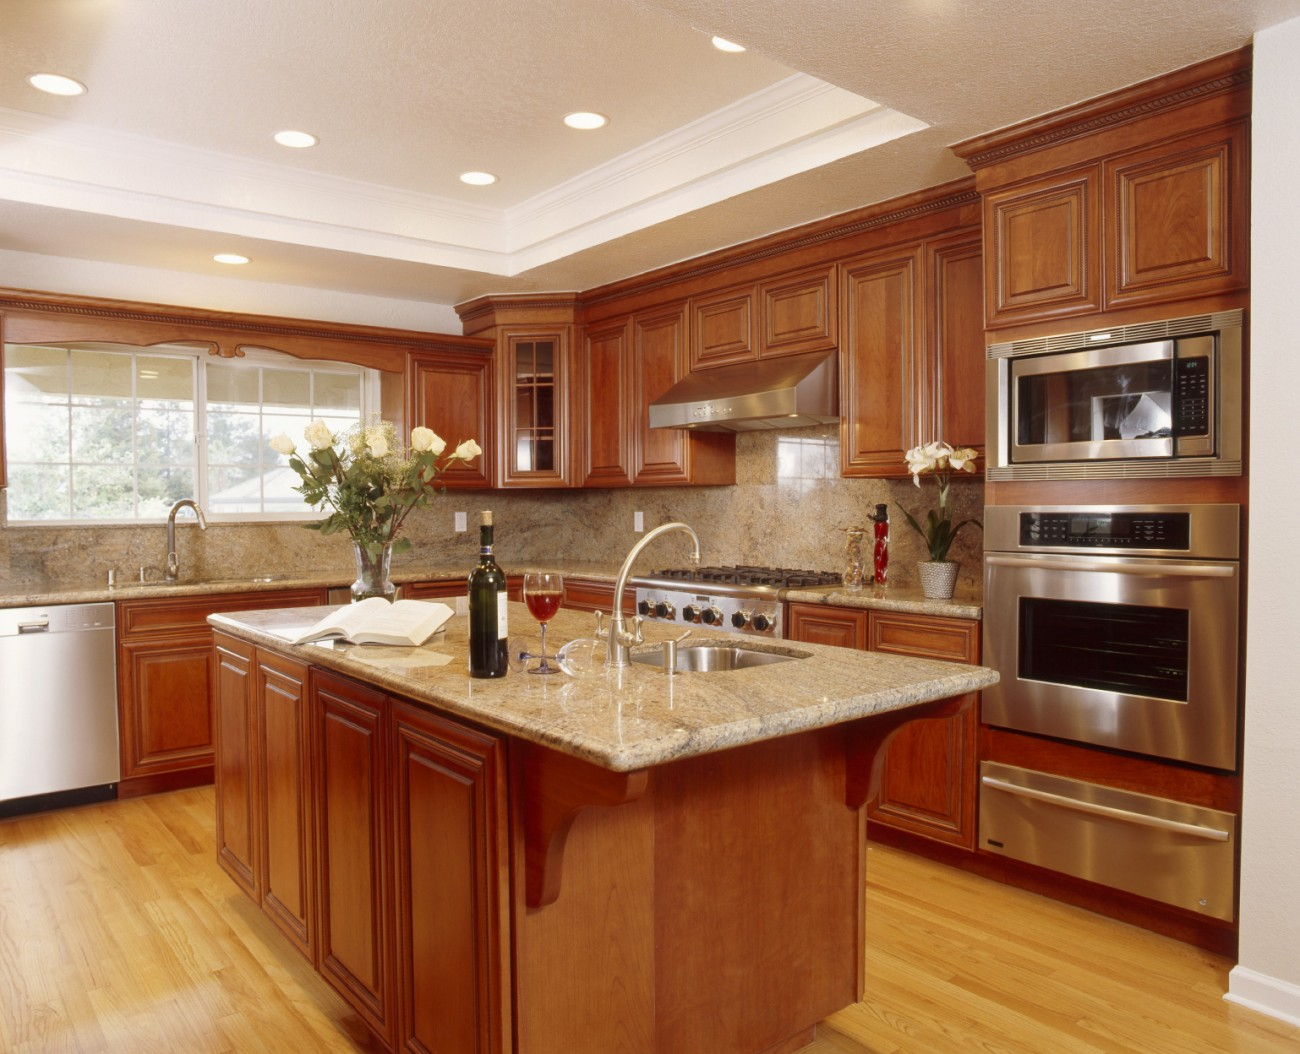 Charlottesville Kitchen Design - Integrity Home Contracting